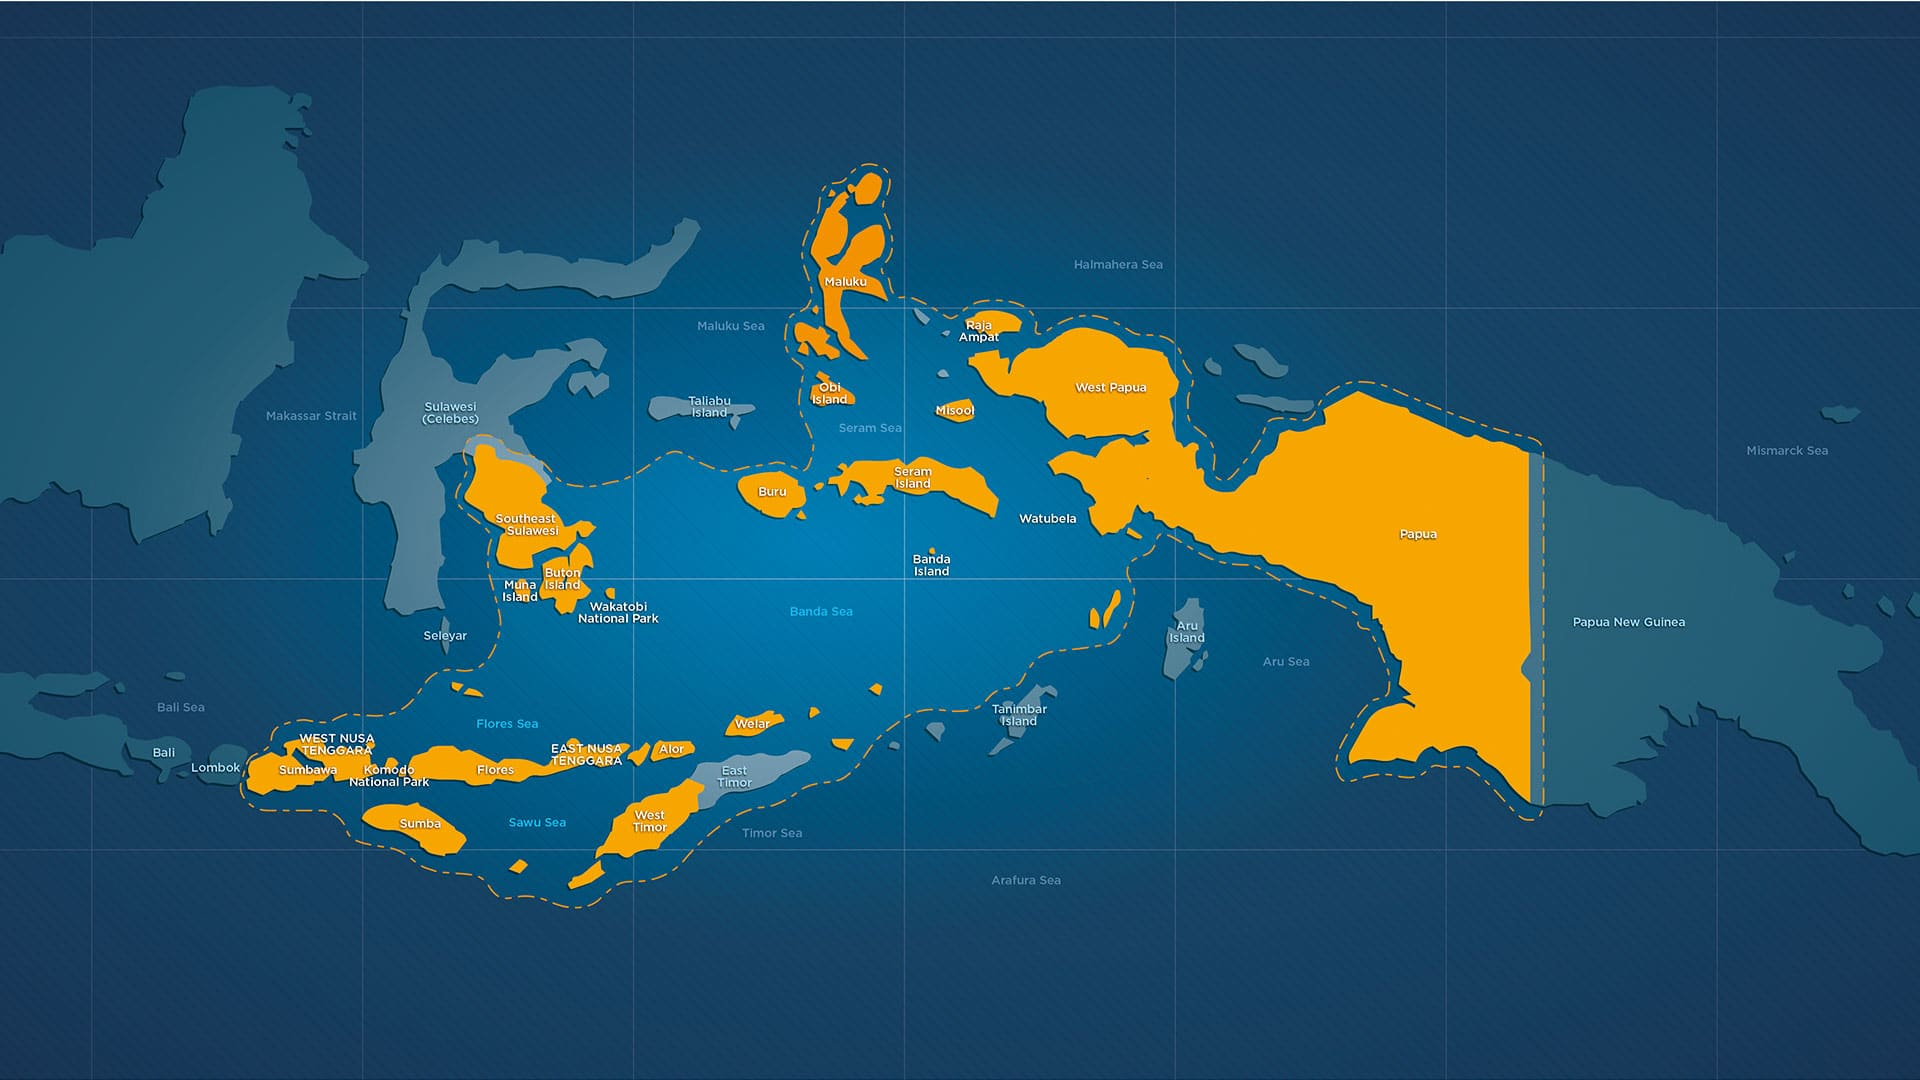 Map of East Indonesia from Bali to Papua